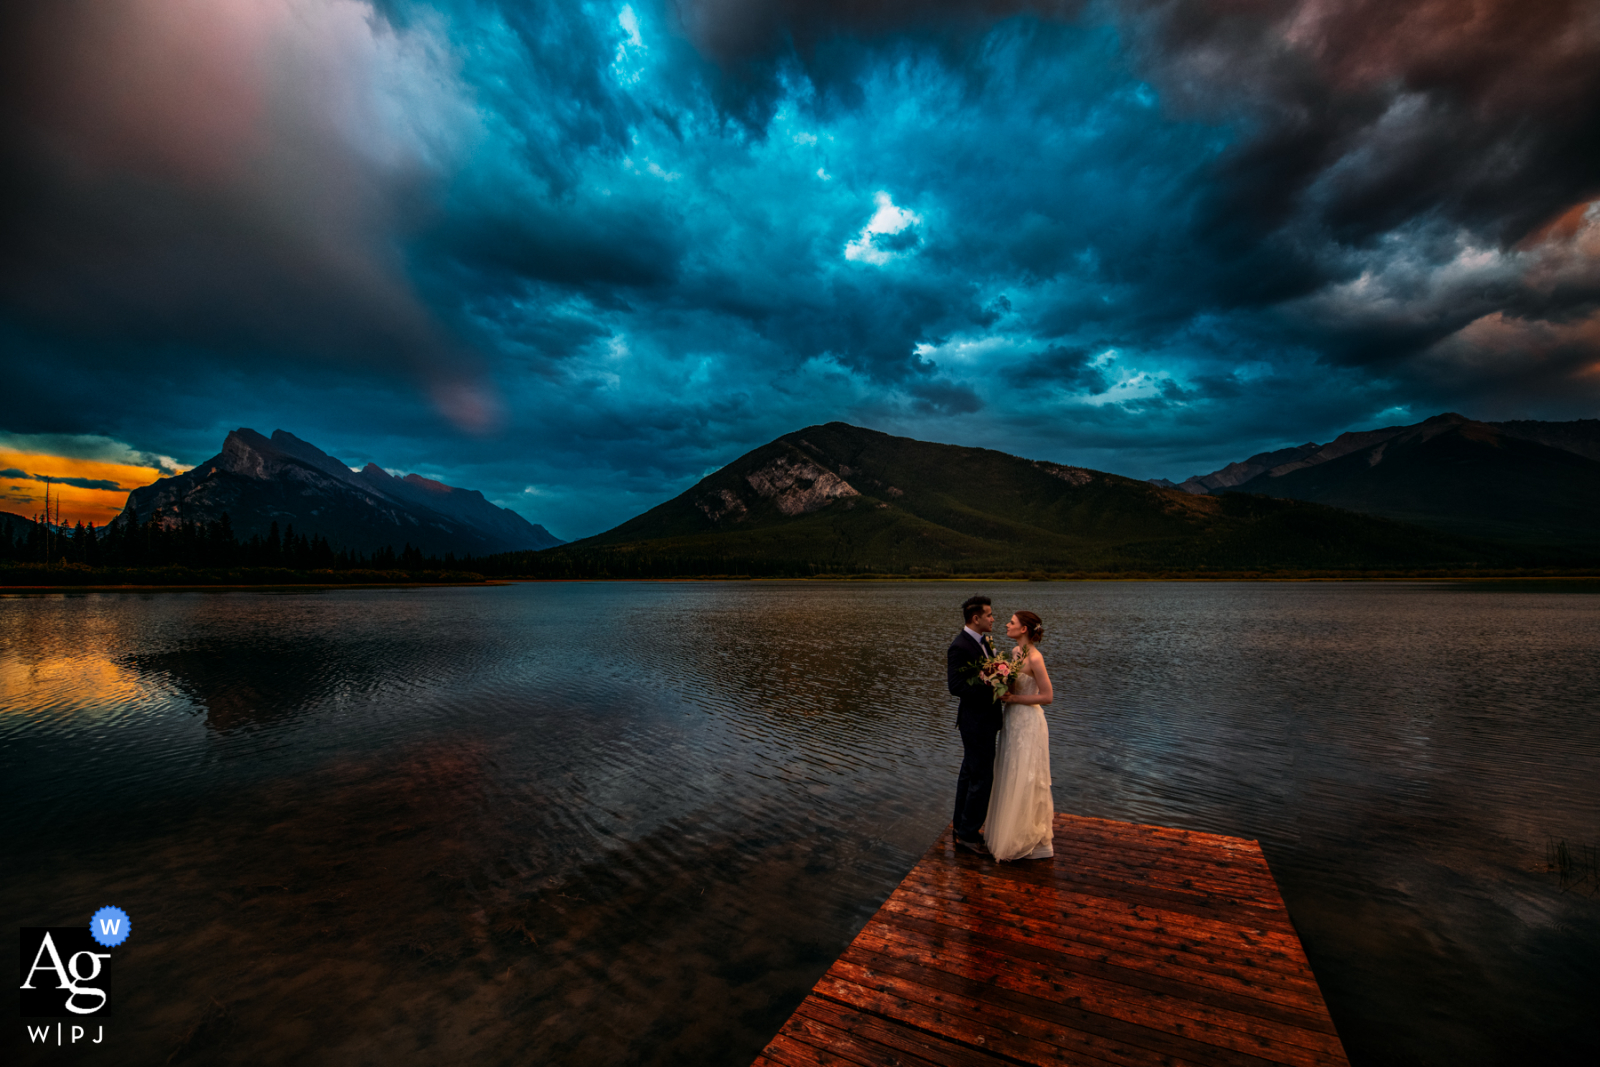 Vermilion Lakes, AB, Canadawedding day Sunset portrait of the bride and groom on a wooden dock